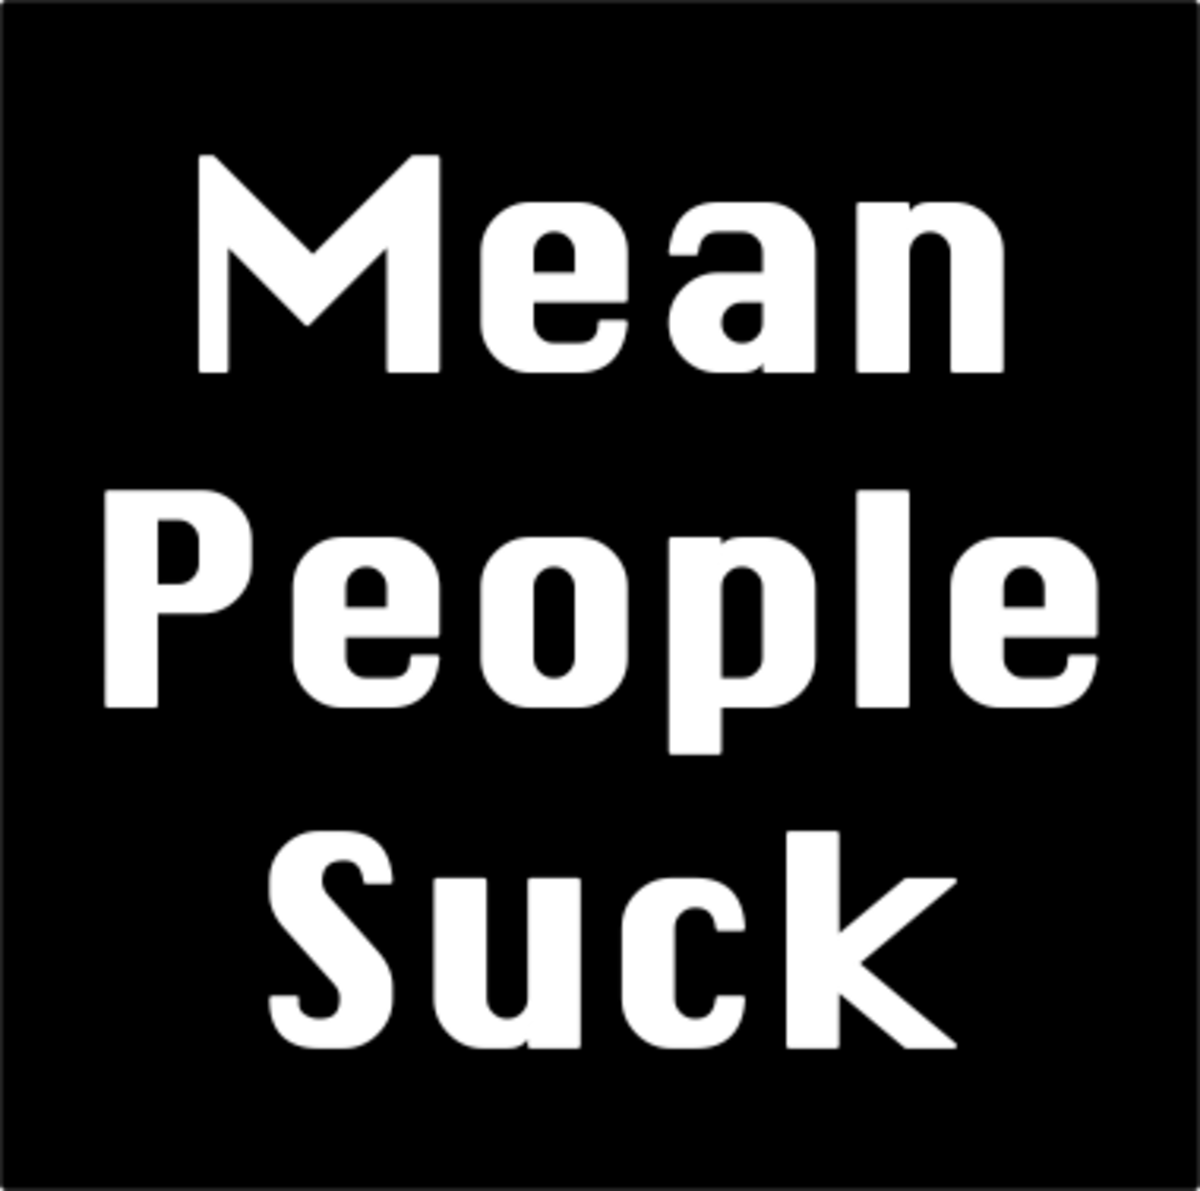 Mean people suck.  But how'd they get they way?  And what are you going to do about it?